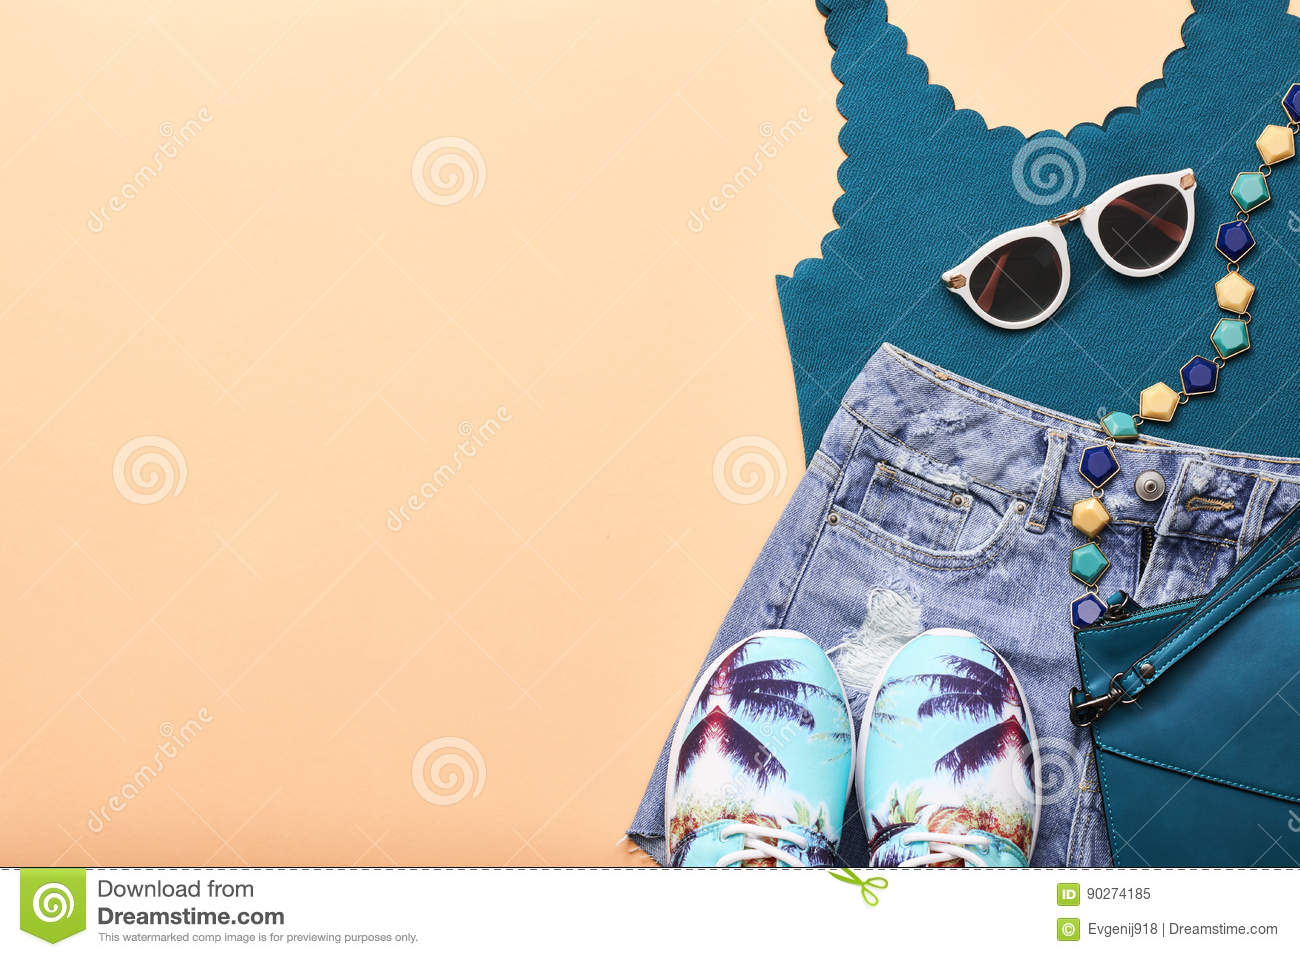 Fashion Design Hipster Accessories Urban Outfit Stock Image